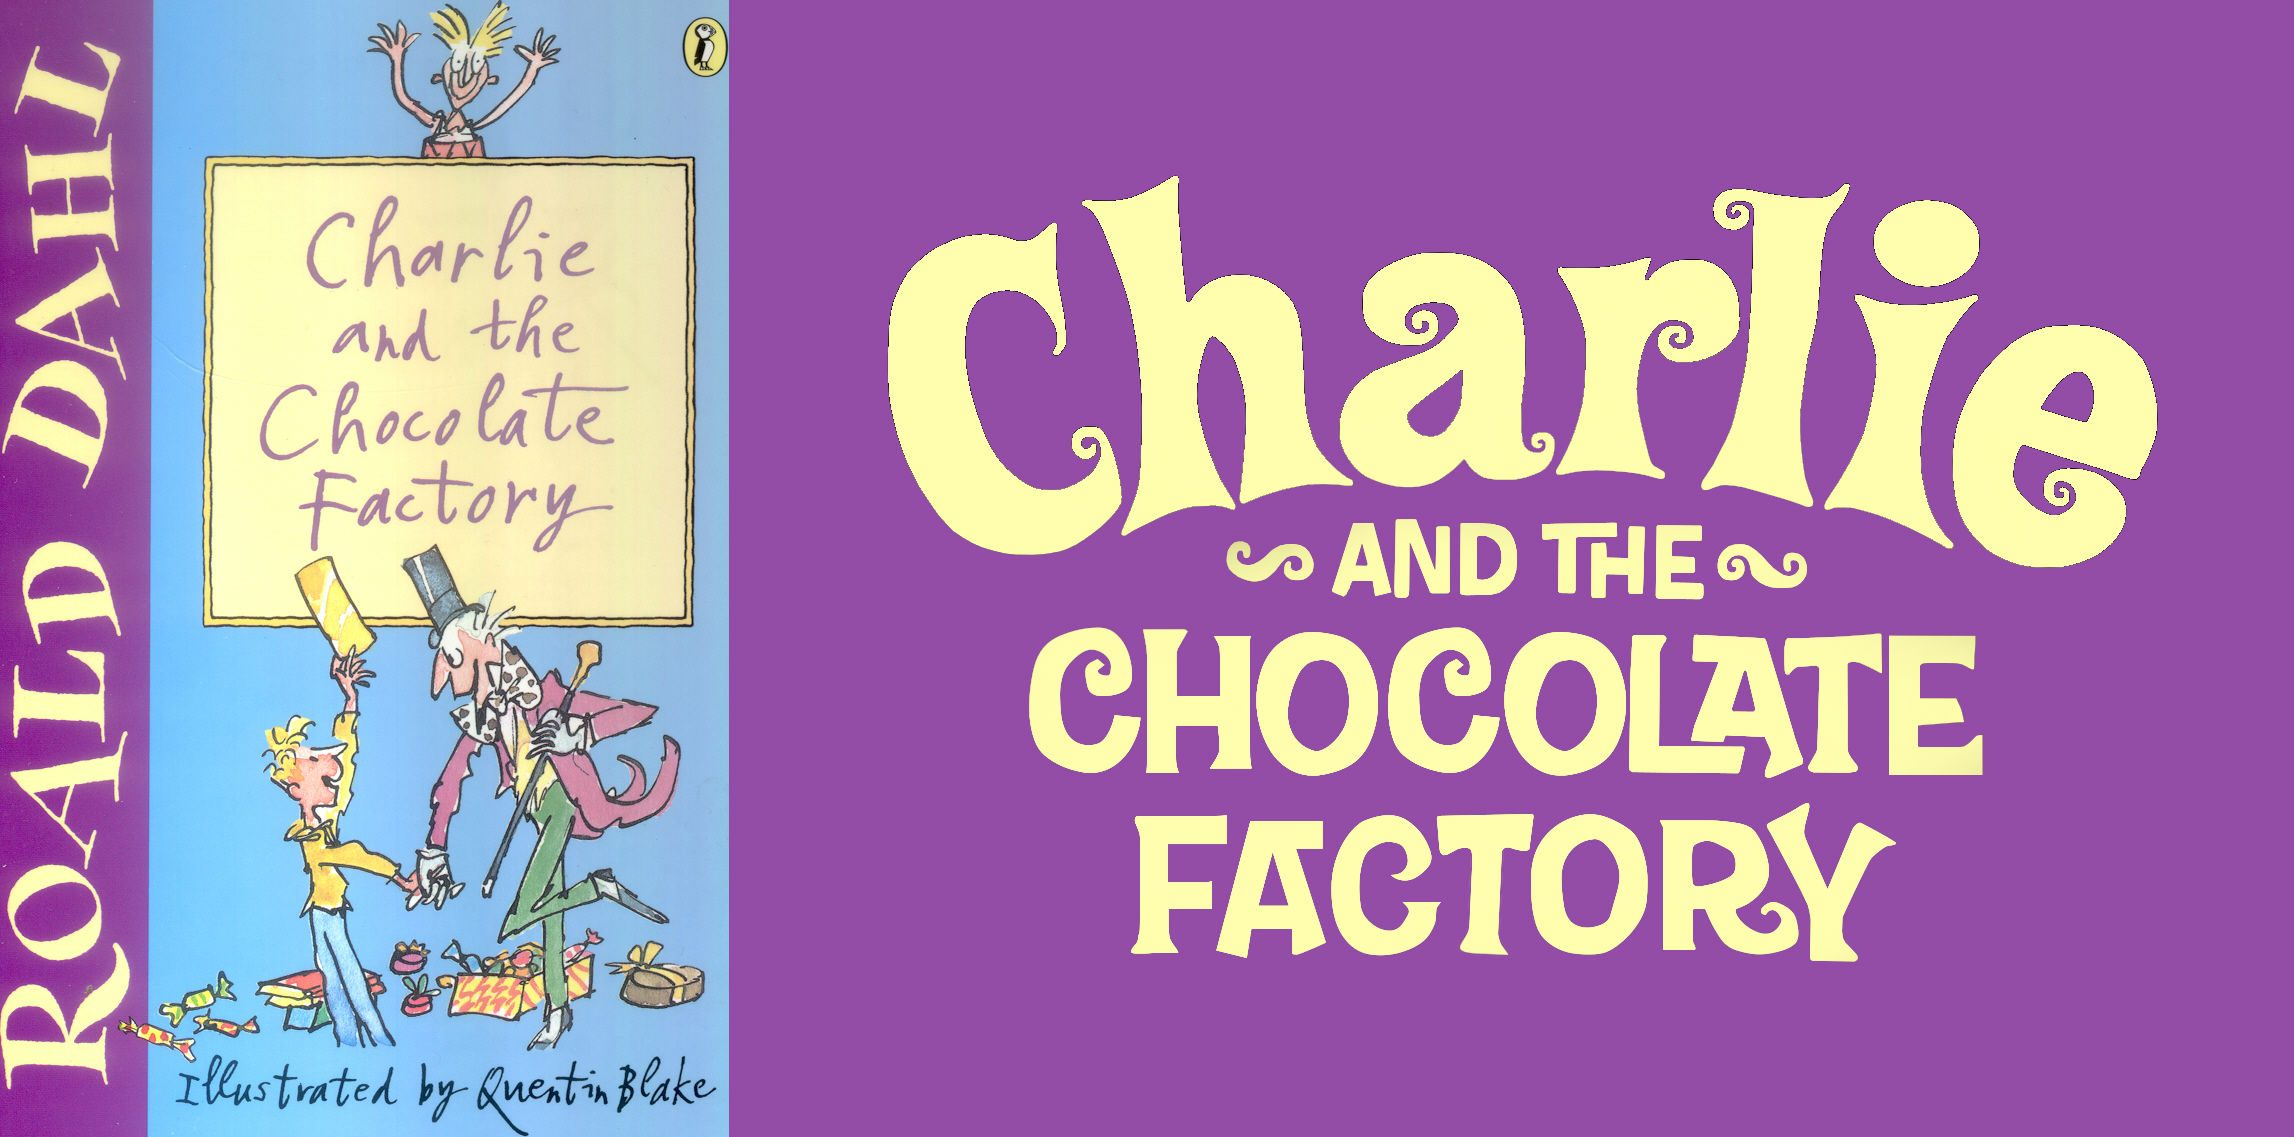 Game Of Thrones Quotes Desktop Wallpaper Download Charlie And The Chocolate Factory Lickable